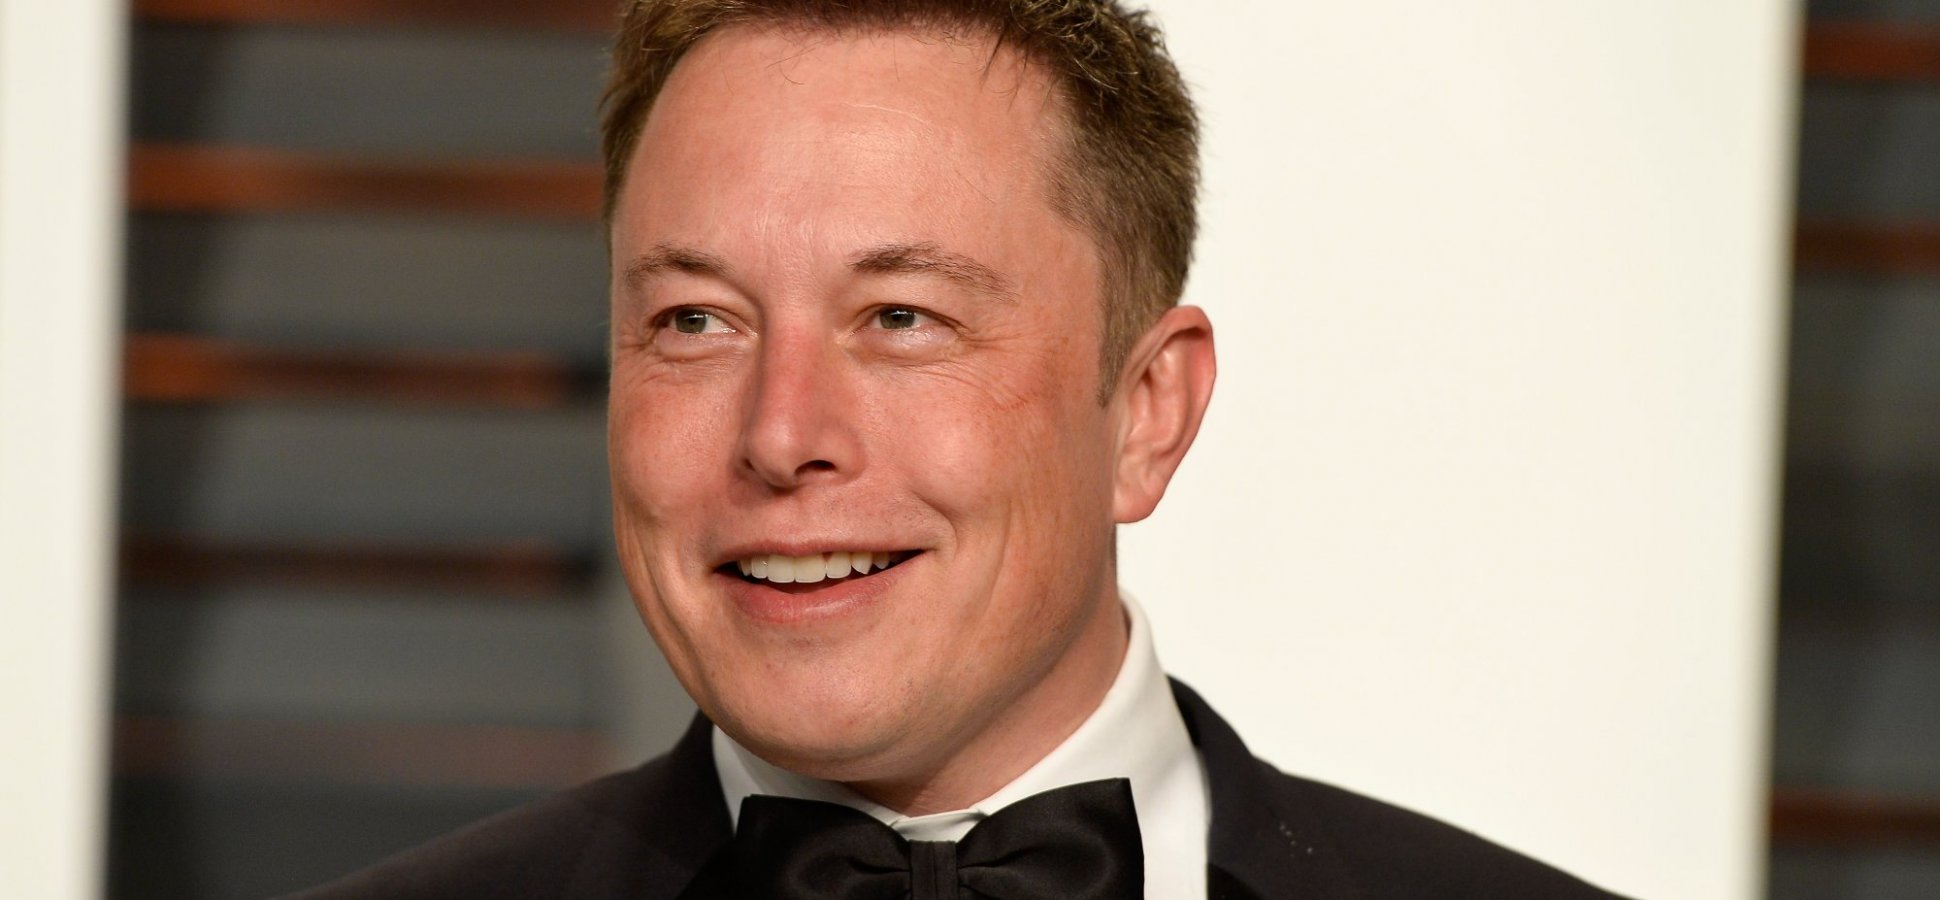 After Elon Musk Won His Case Against the Cave Explorer He Called 'Pedo Guy,' He Told Reporters His 'Faith in Humanity Is Restored'